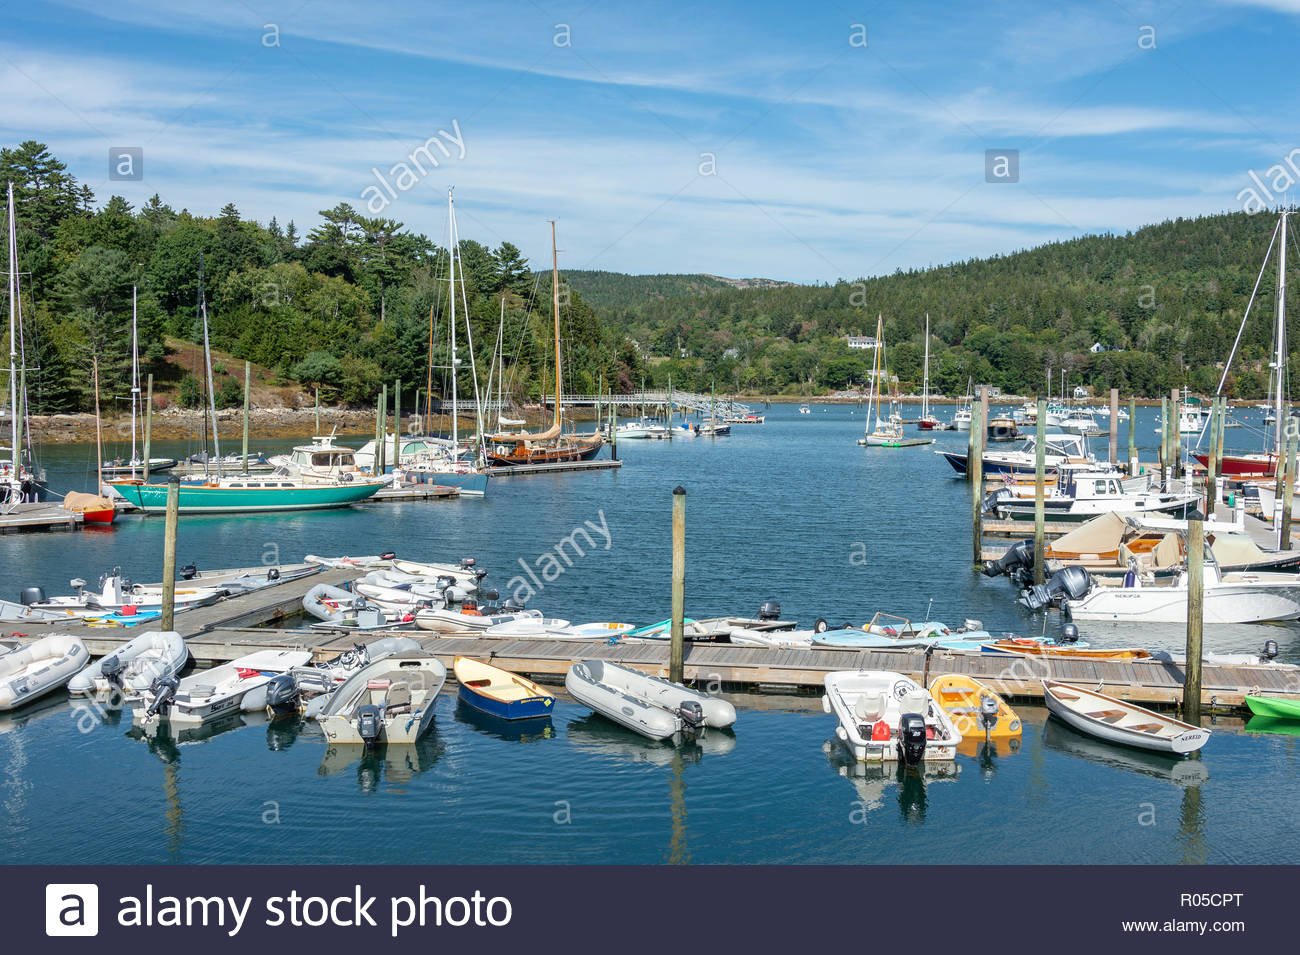 Northeast Harbor, Maine, USA - September 22, 2018: Boats moored in every direction in Northeast Harbor on last day of summer - Stock Image